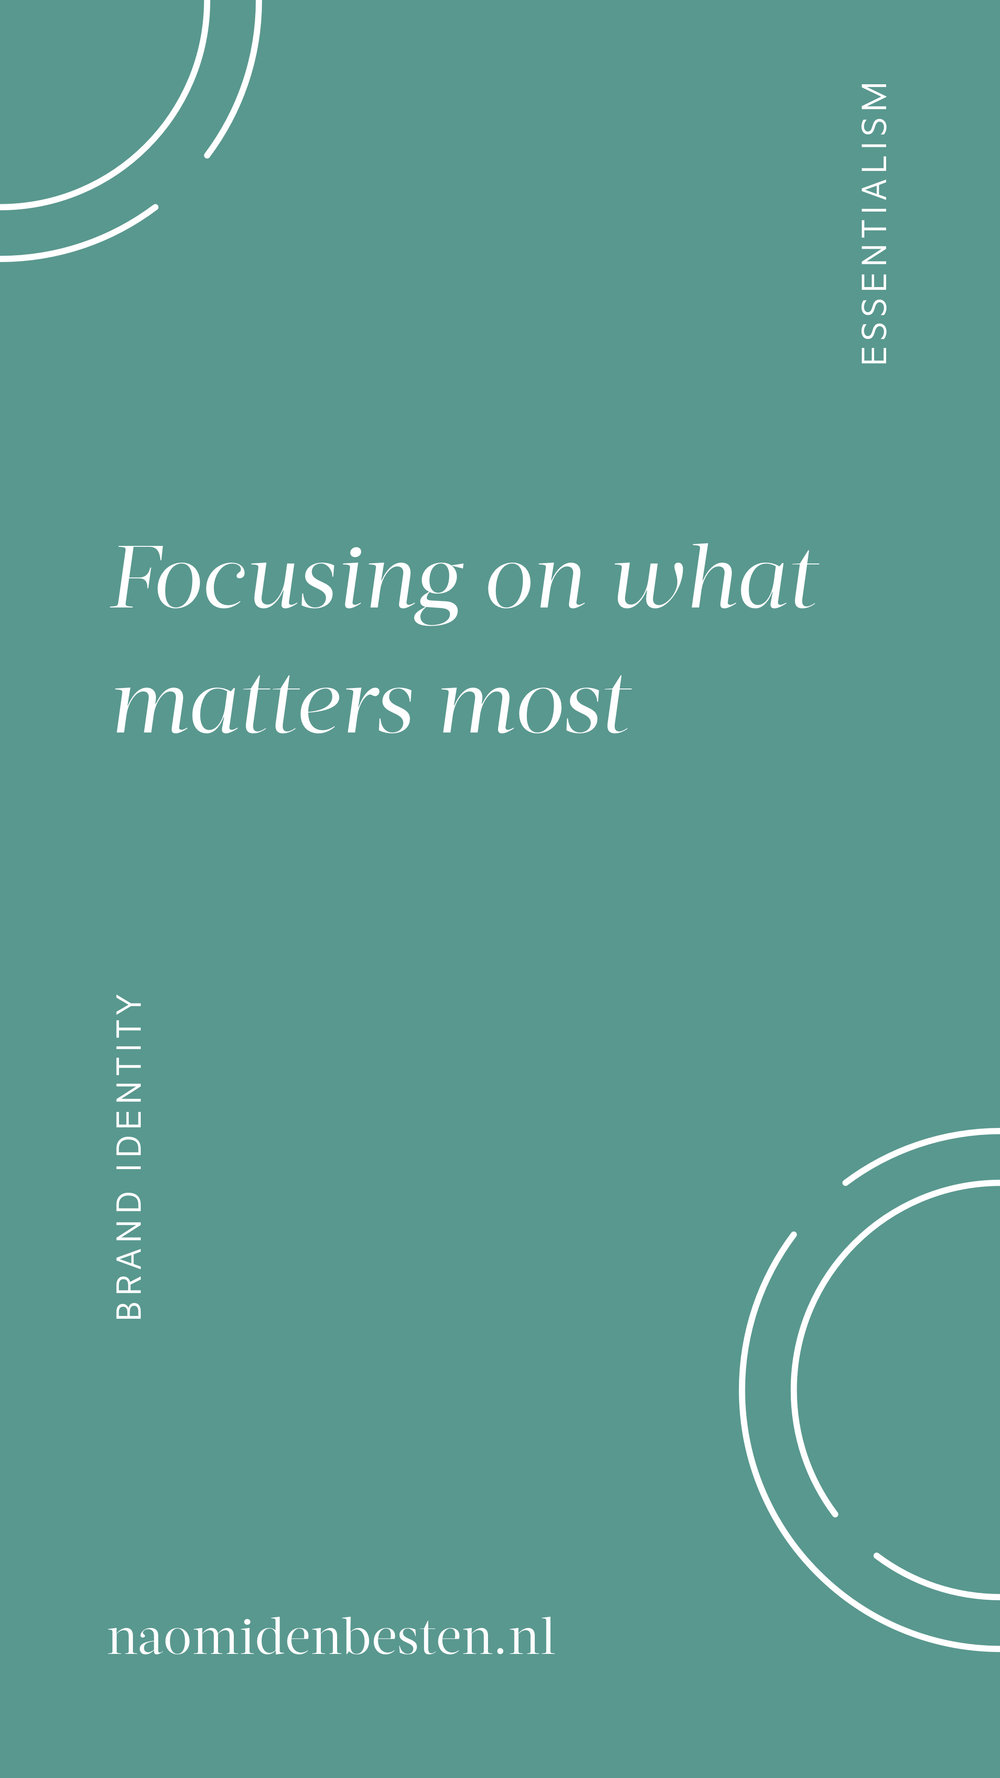 Focusing on what matters most.jpg